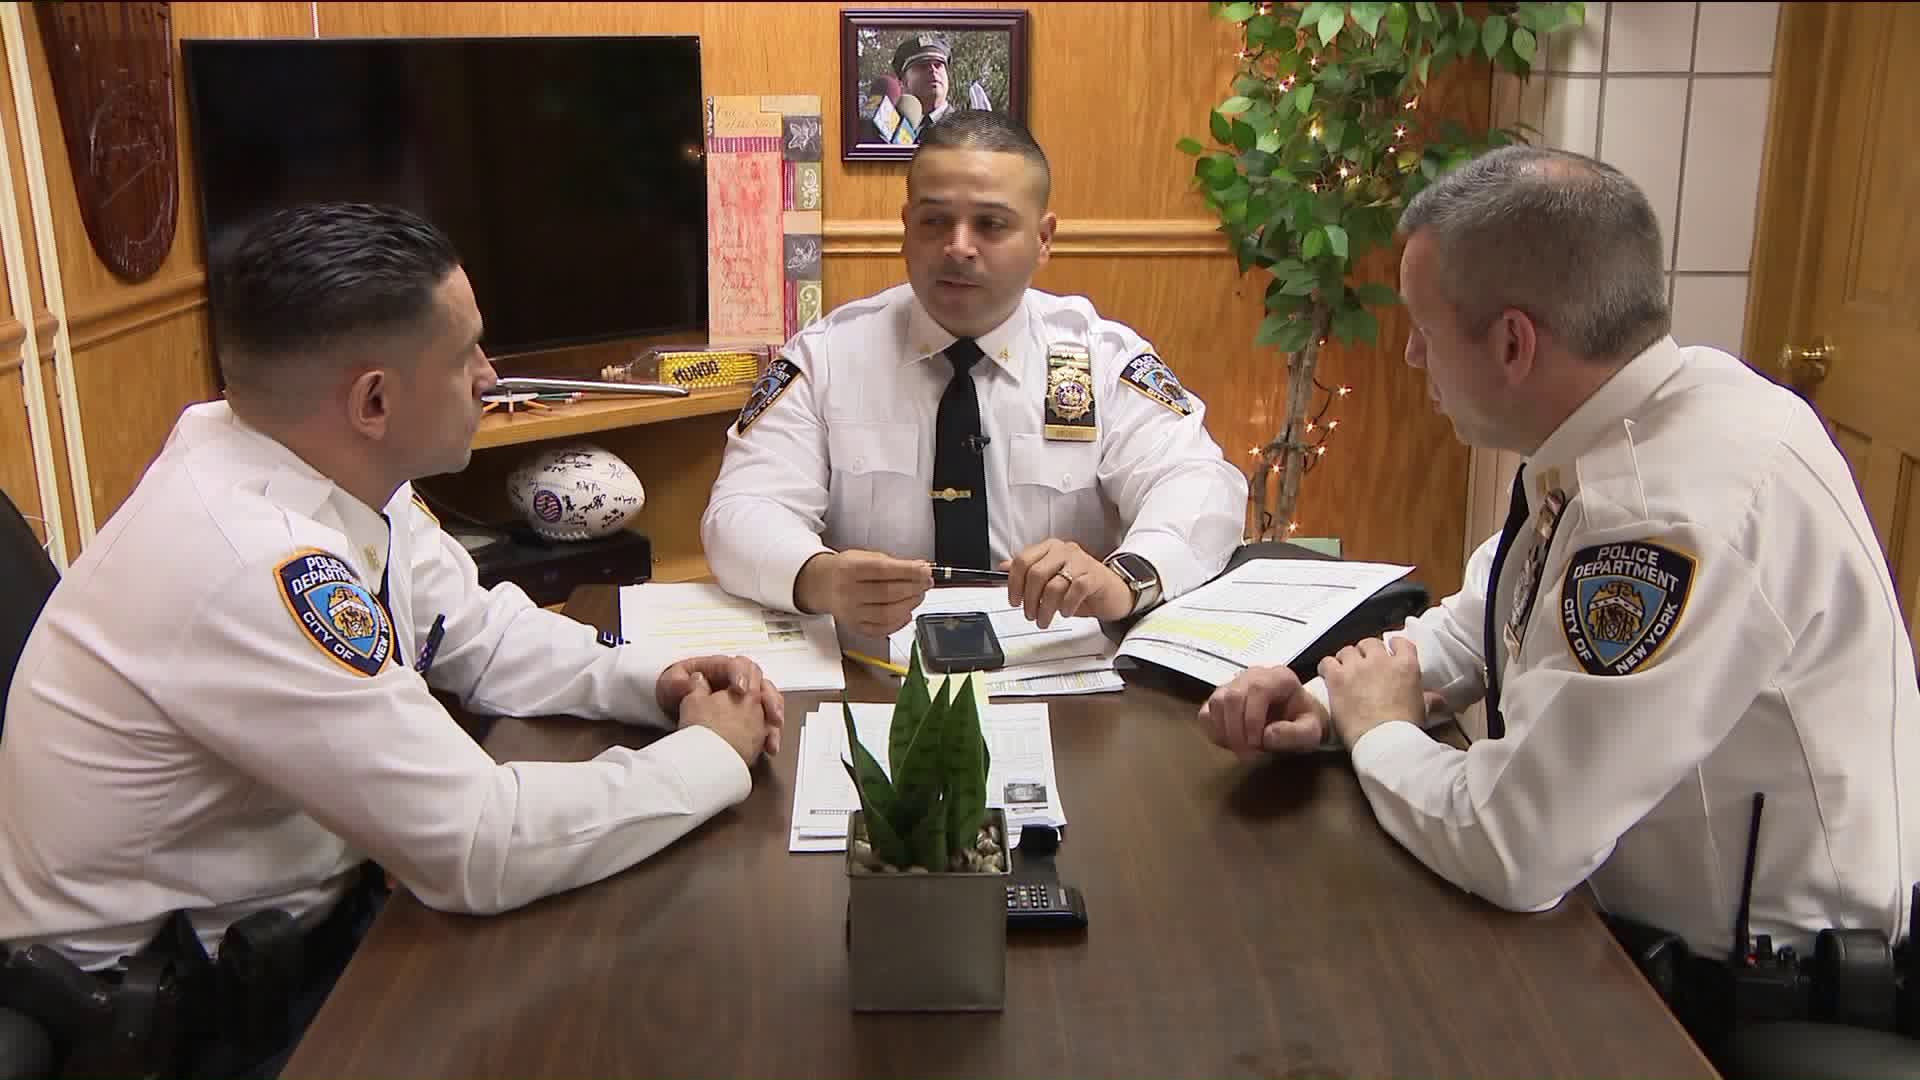 Exclusive: A look at the NYPD's anti-crime unit in the subway | PIX11